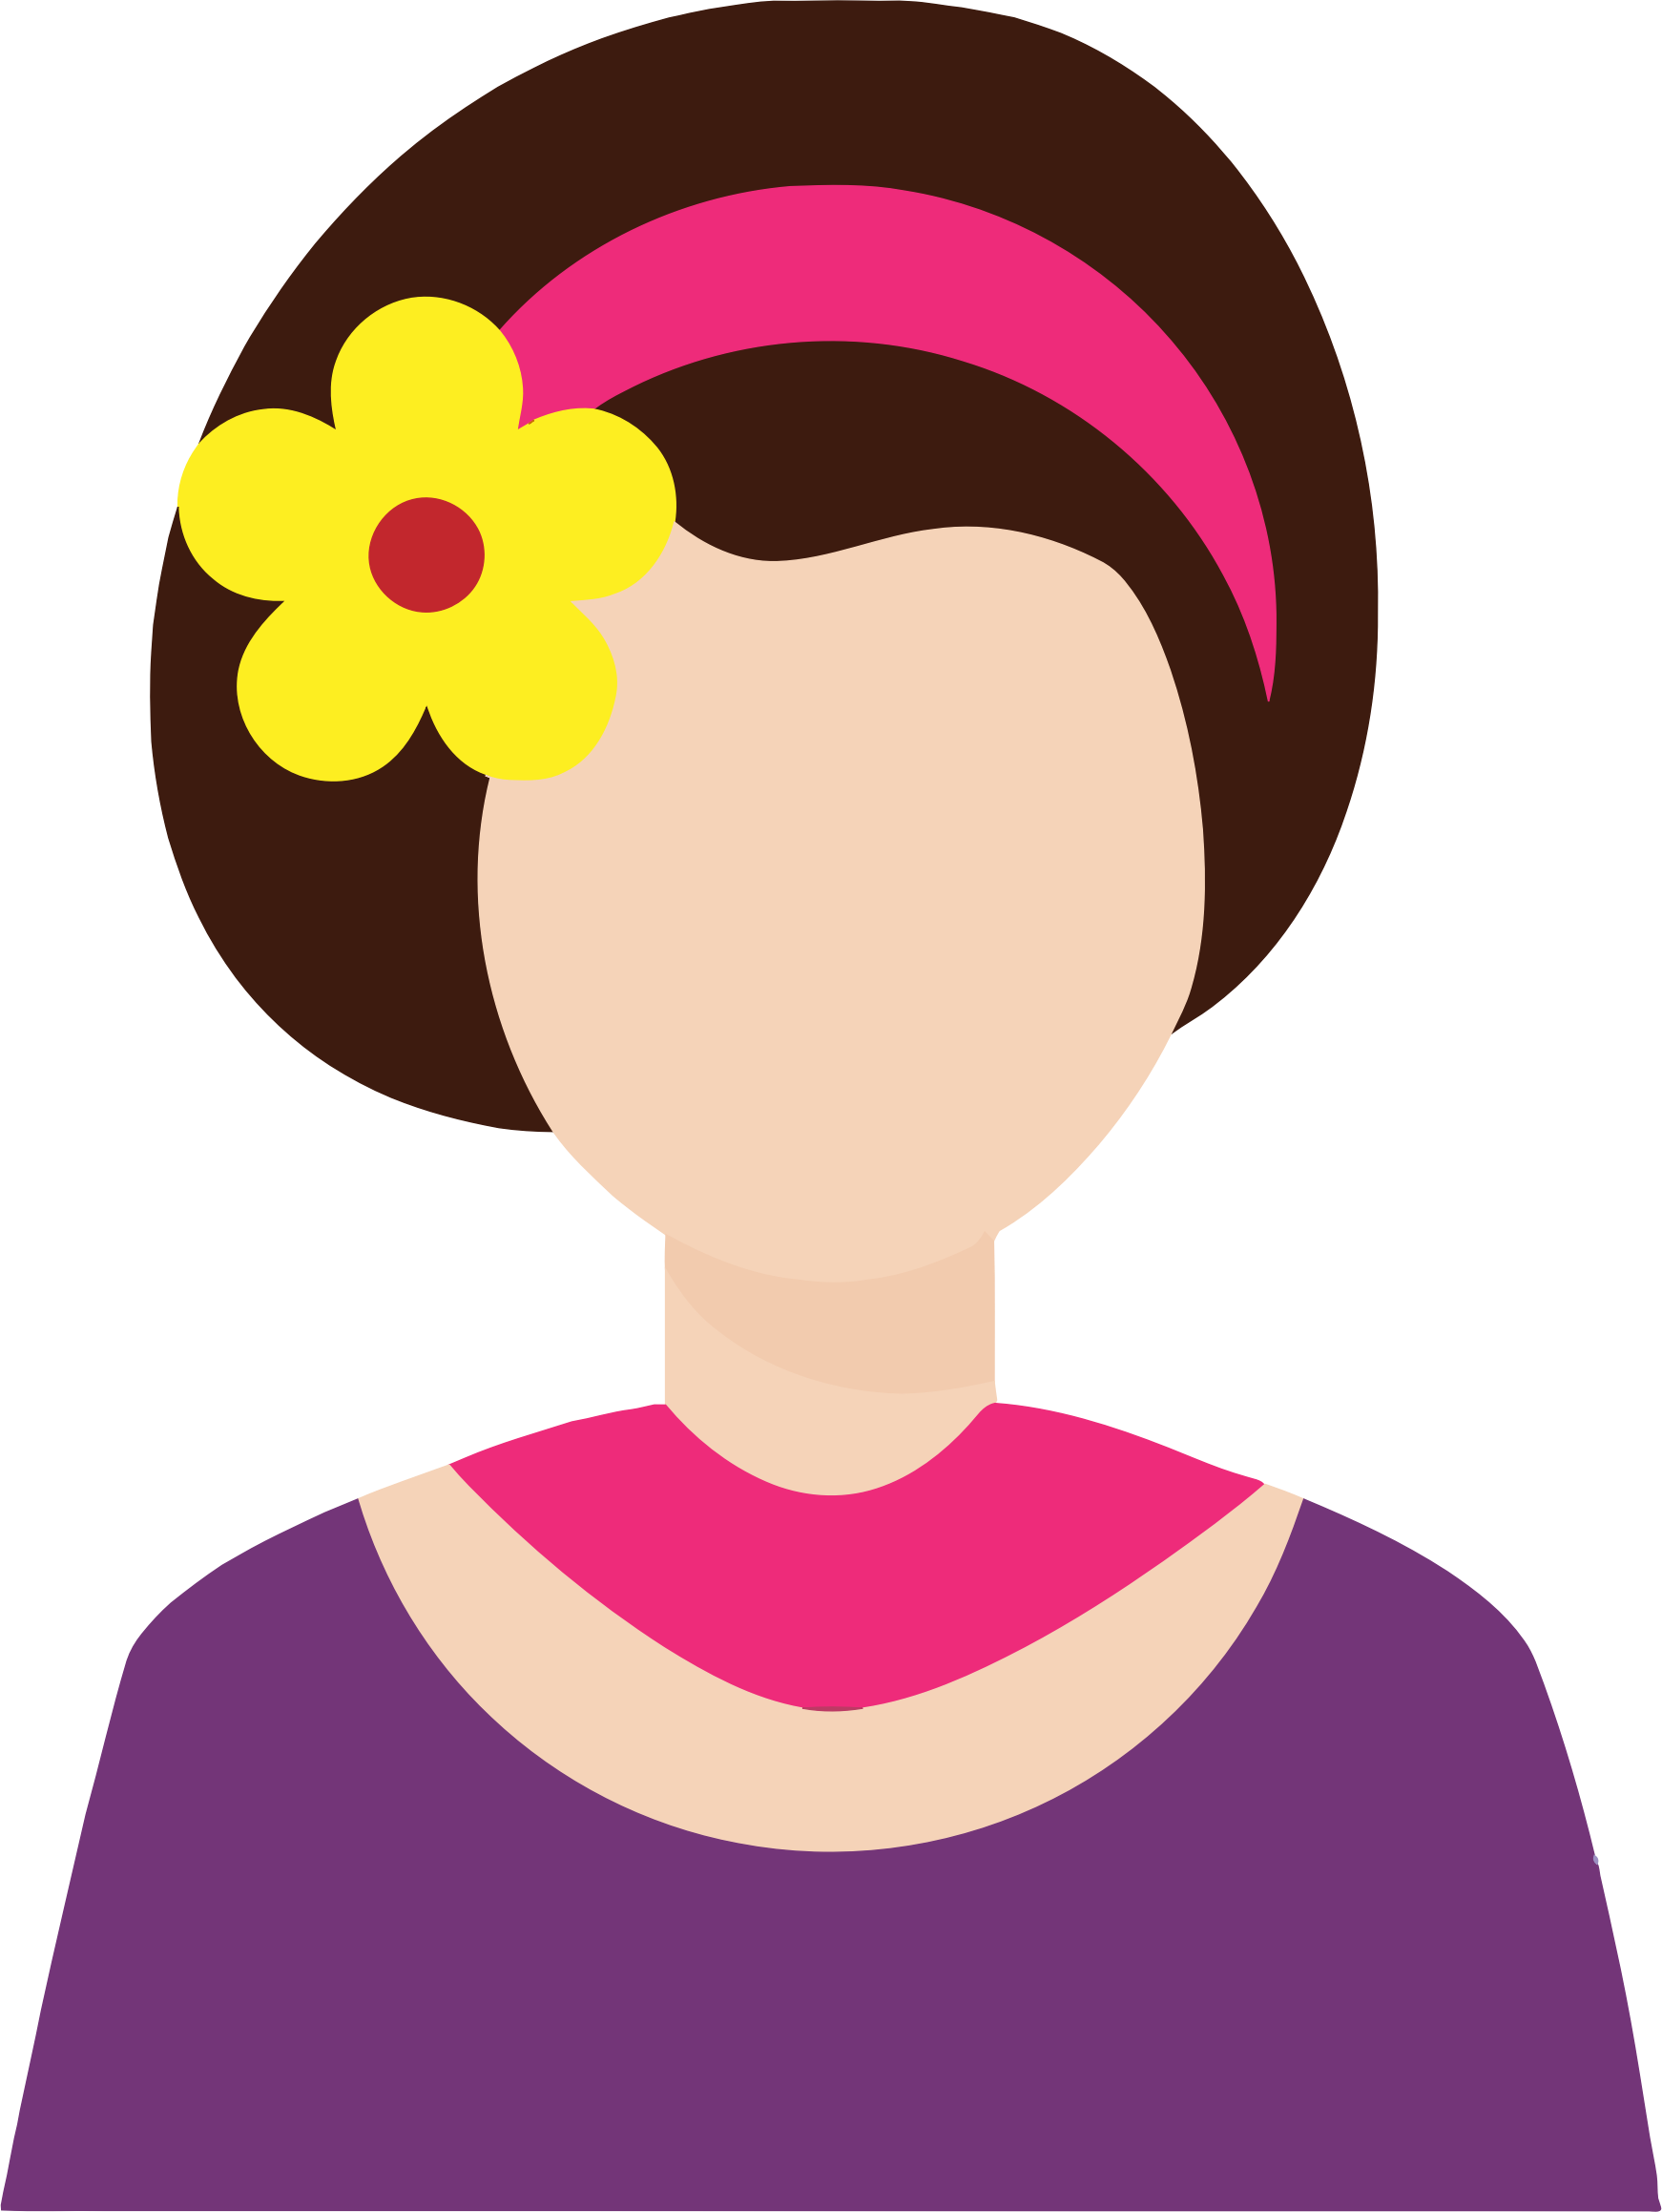 Clipart hair flower clip transparent download Clipart - Female Avatar With Flower In Hair clip transparent download